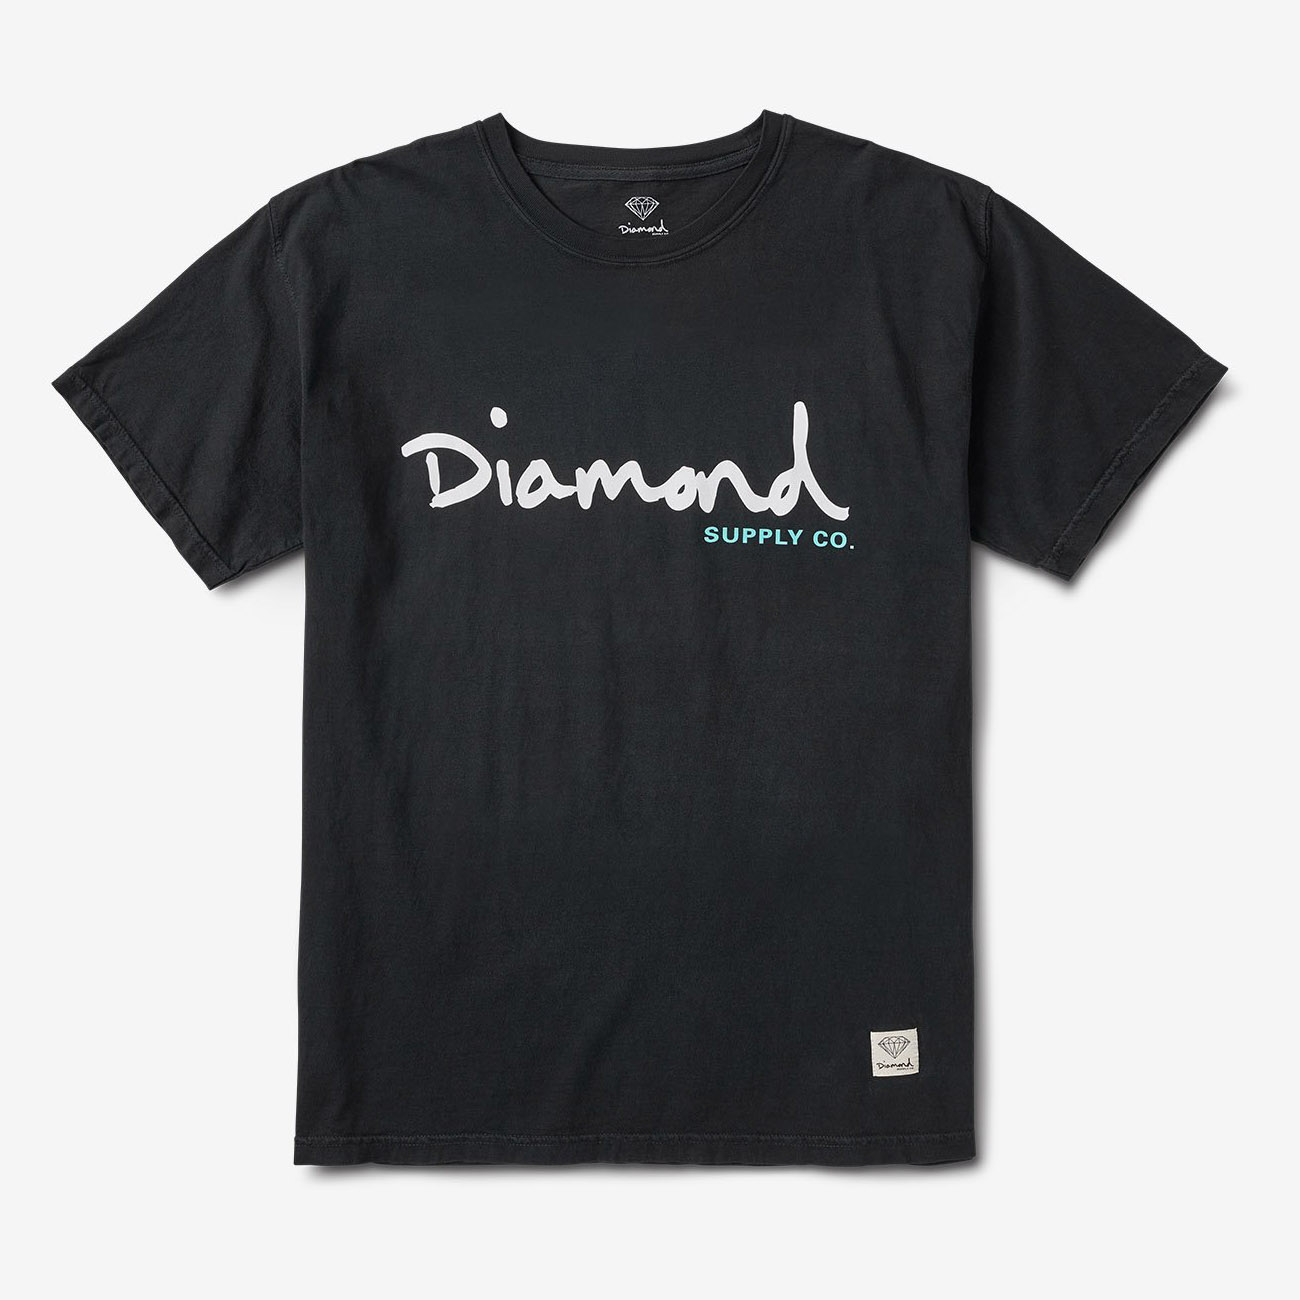 DMD TEE OG SCRPT OVERDYE BK S - Click to enlarge